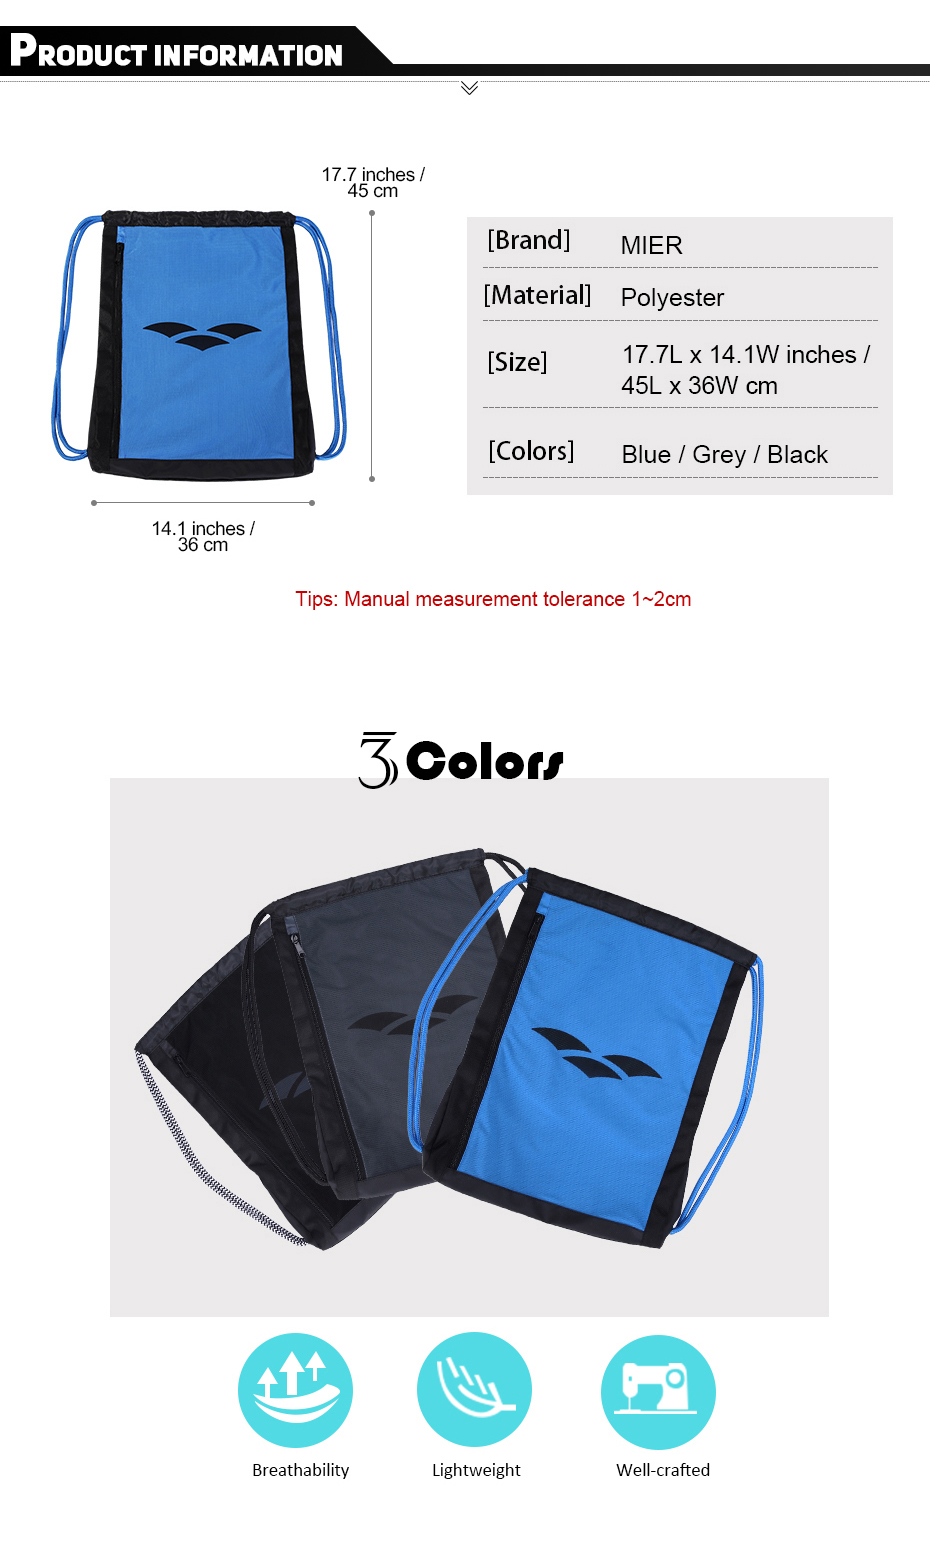 MIER Drawstring Bag Men Women Sackpack for Beach 2df2151b698f2